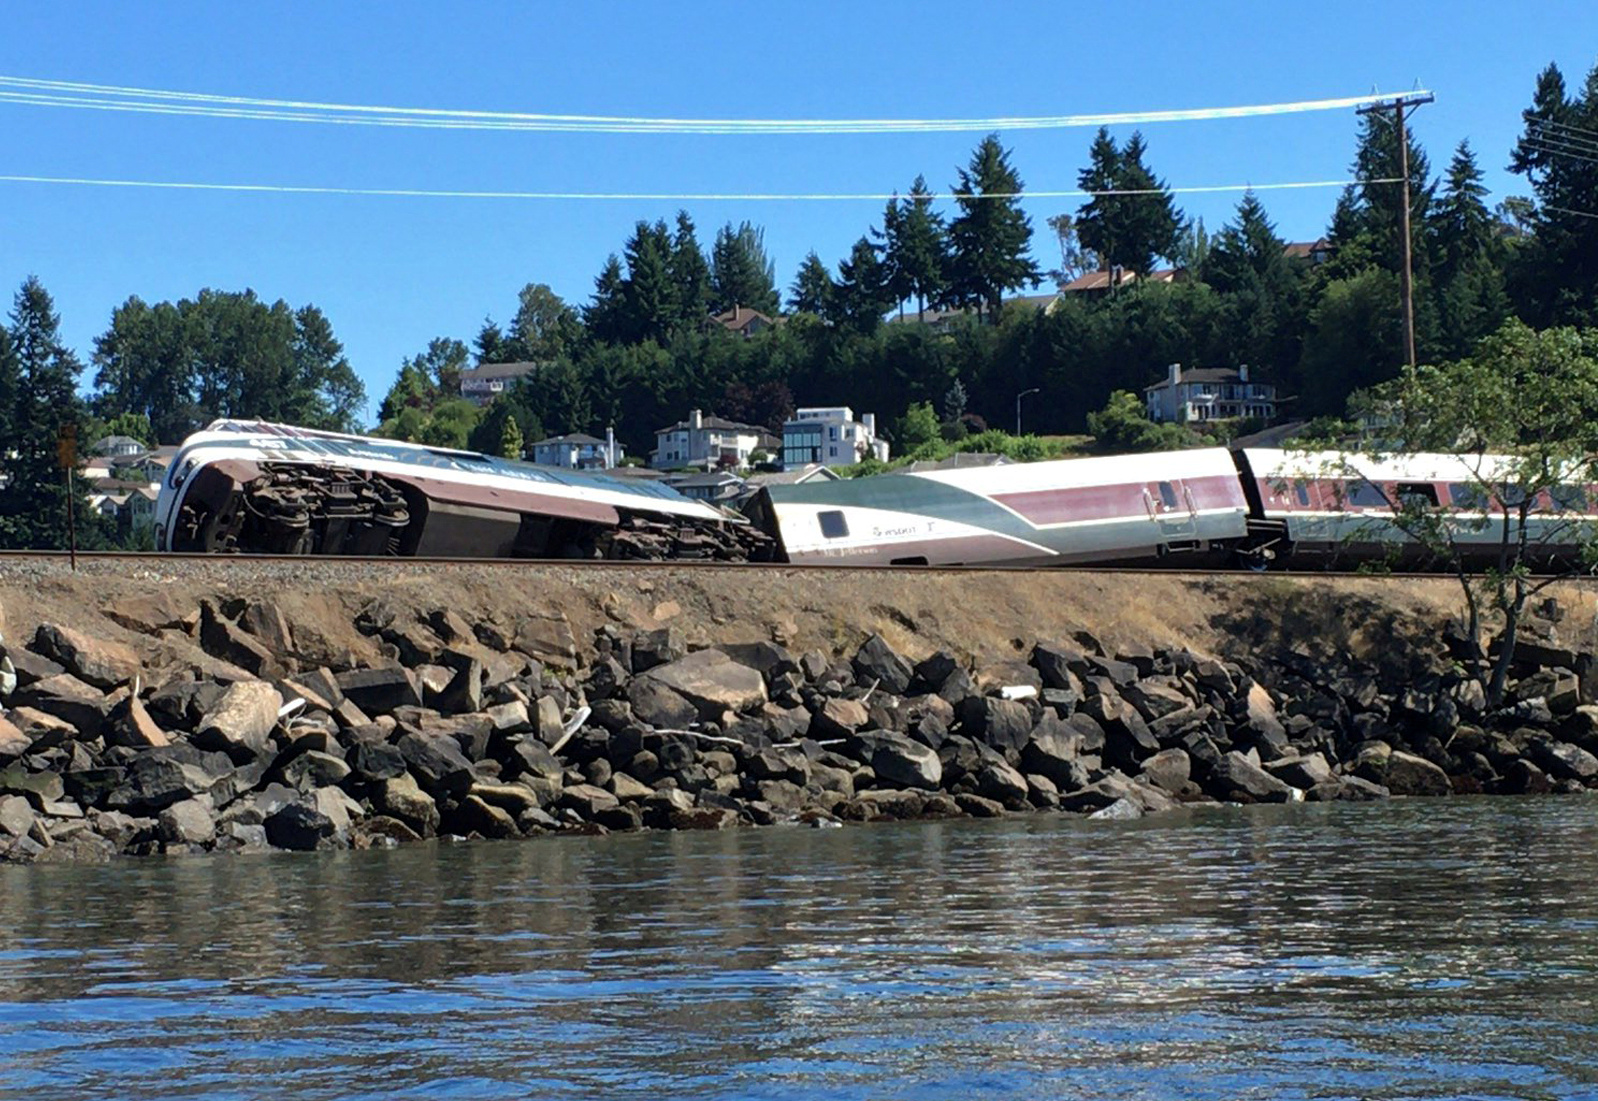 Sheriff: No injuries after Amtrak train derails near Steilacoom